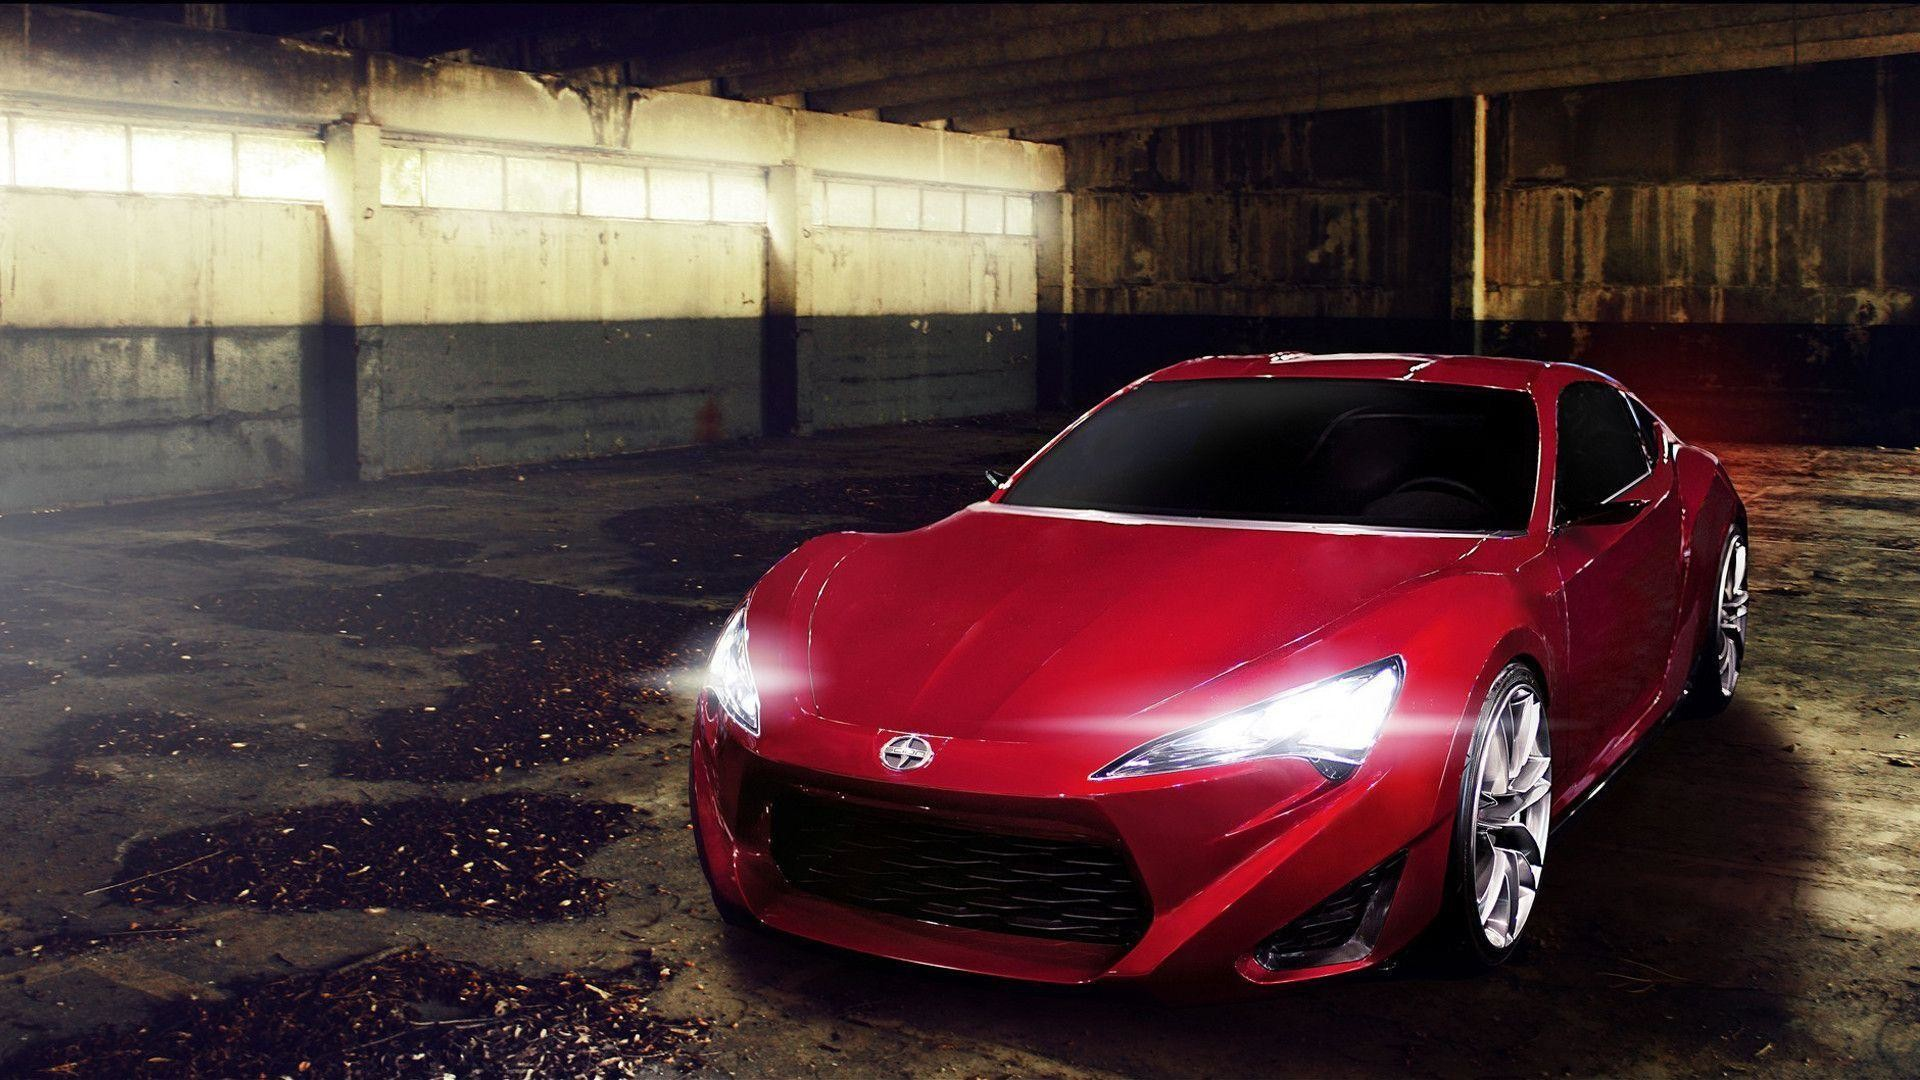 1920x1080 Scion Red Car Hd Desktop Wallpaper